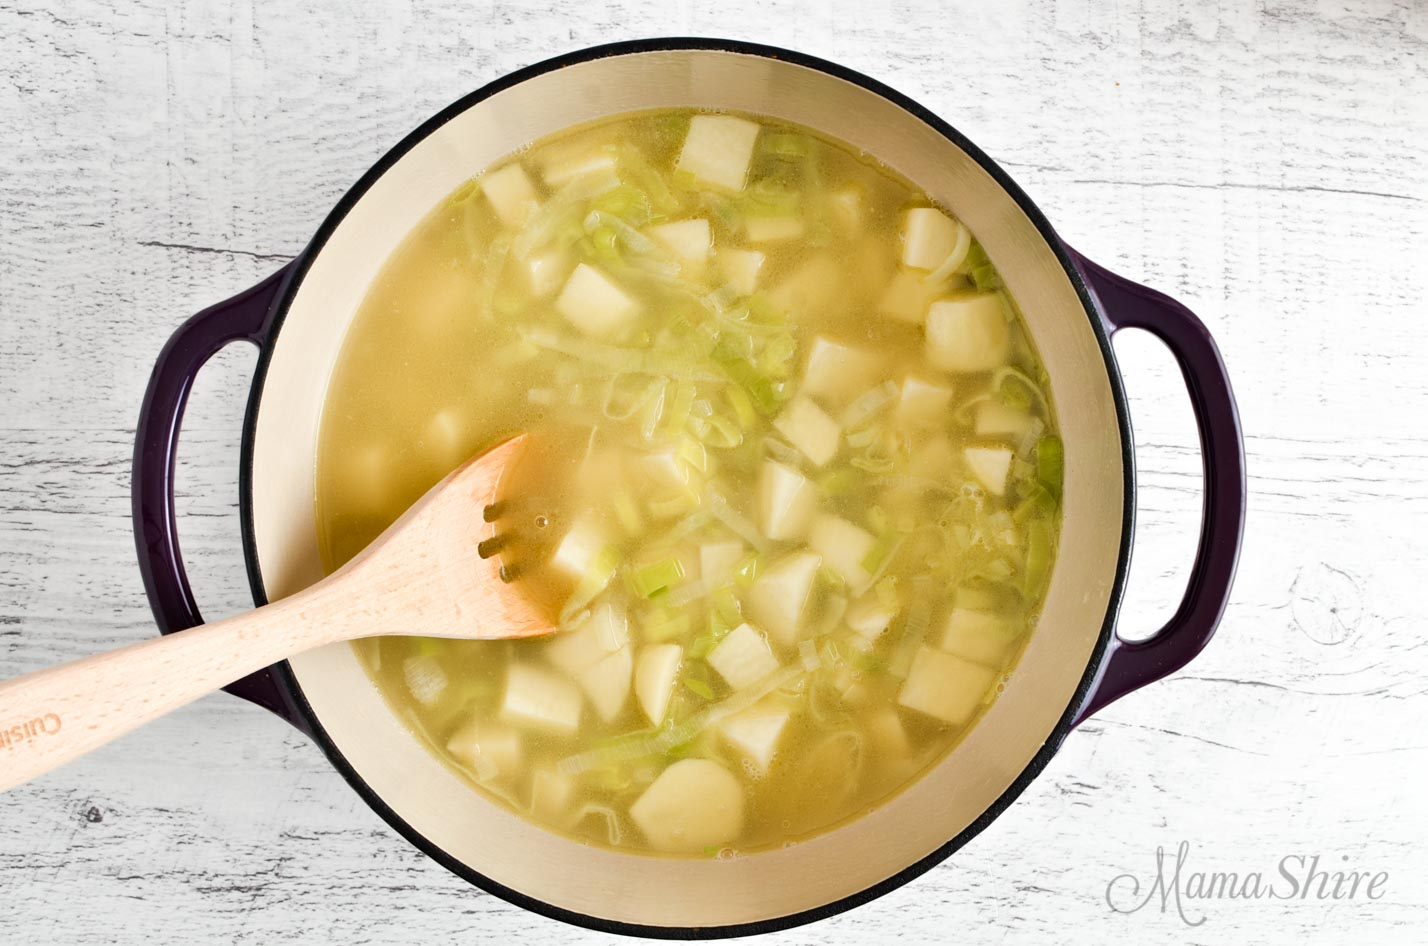 Dutch oven full of dairy-free leek and potato soup.